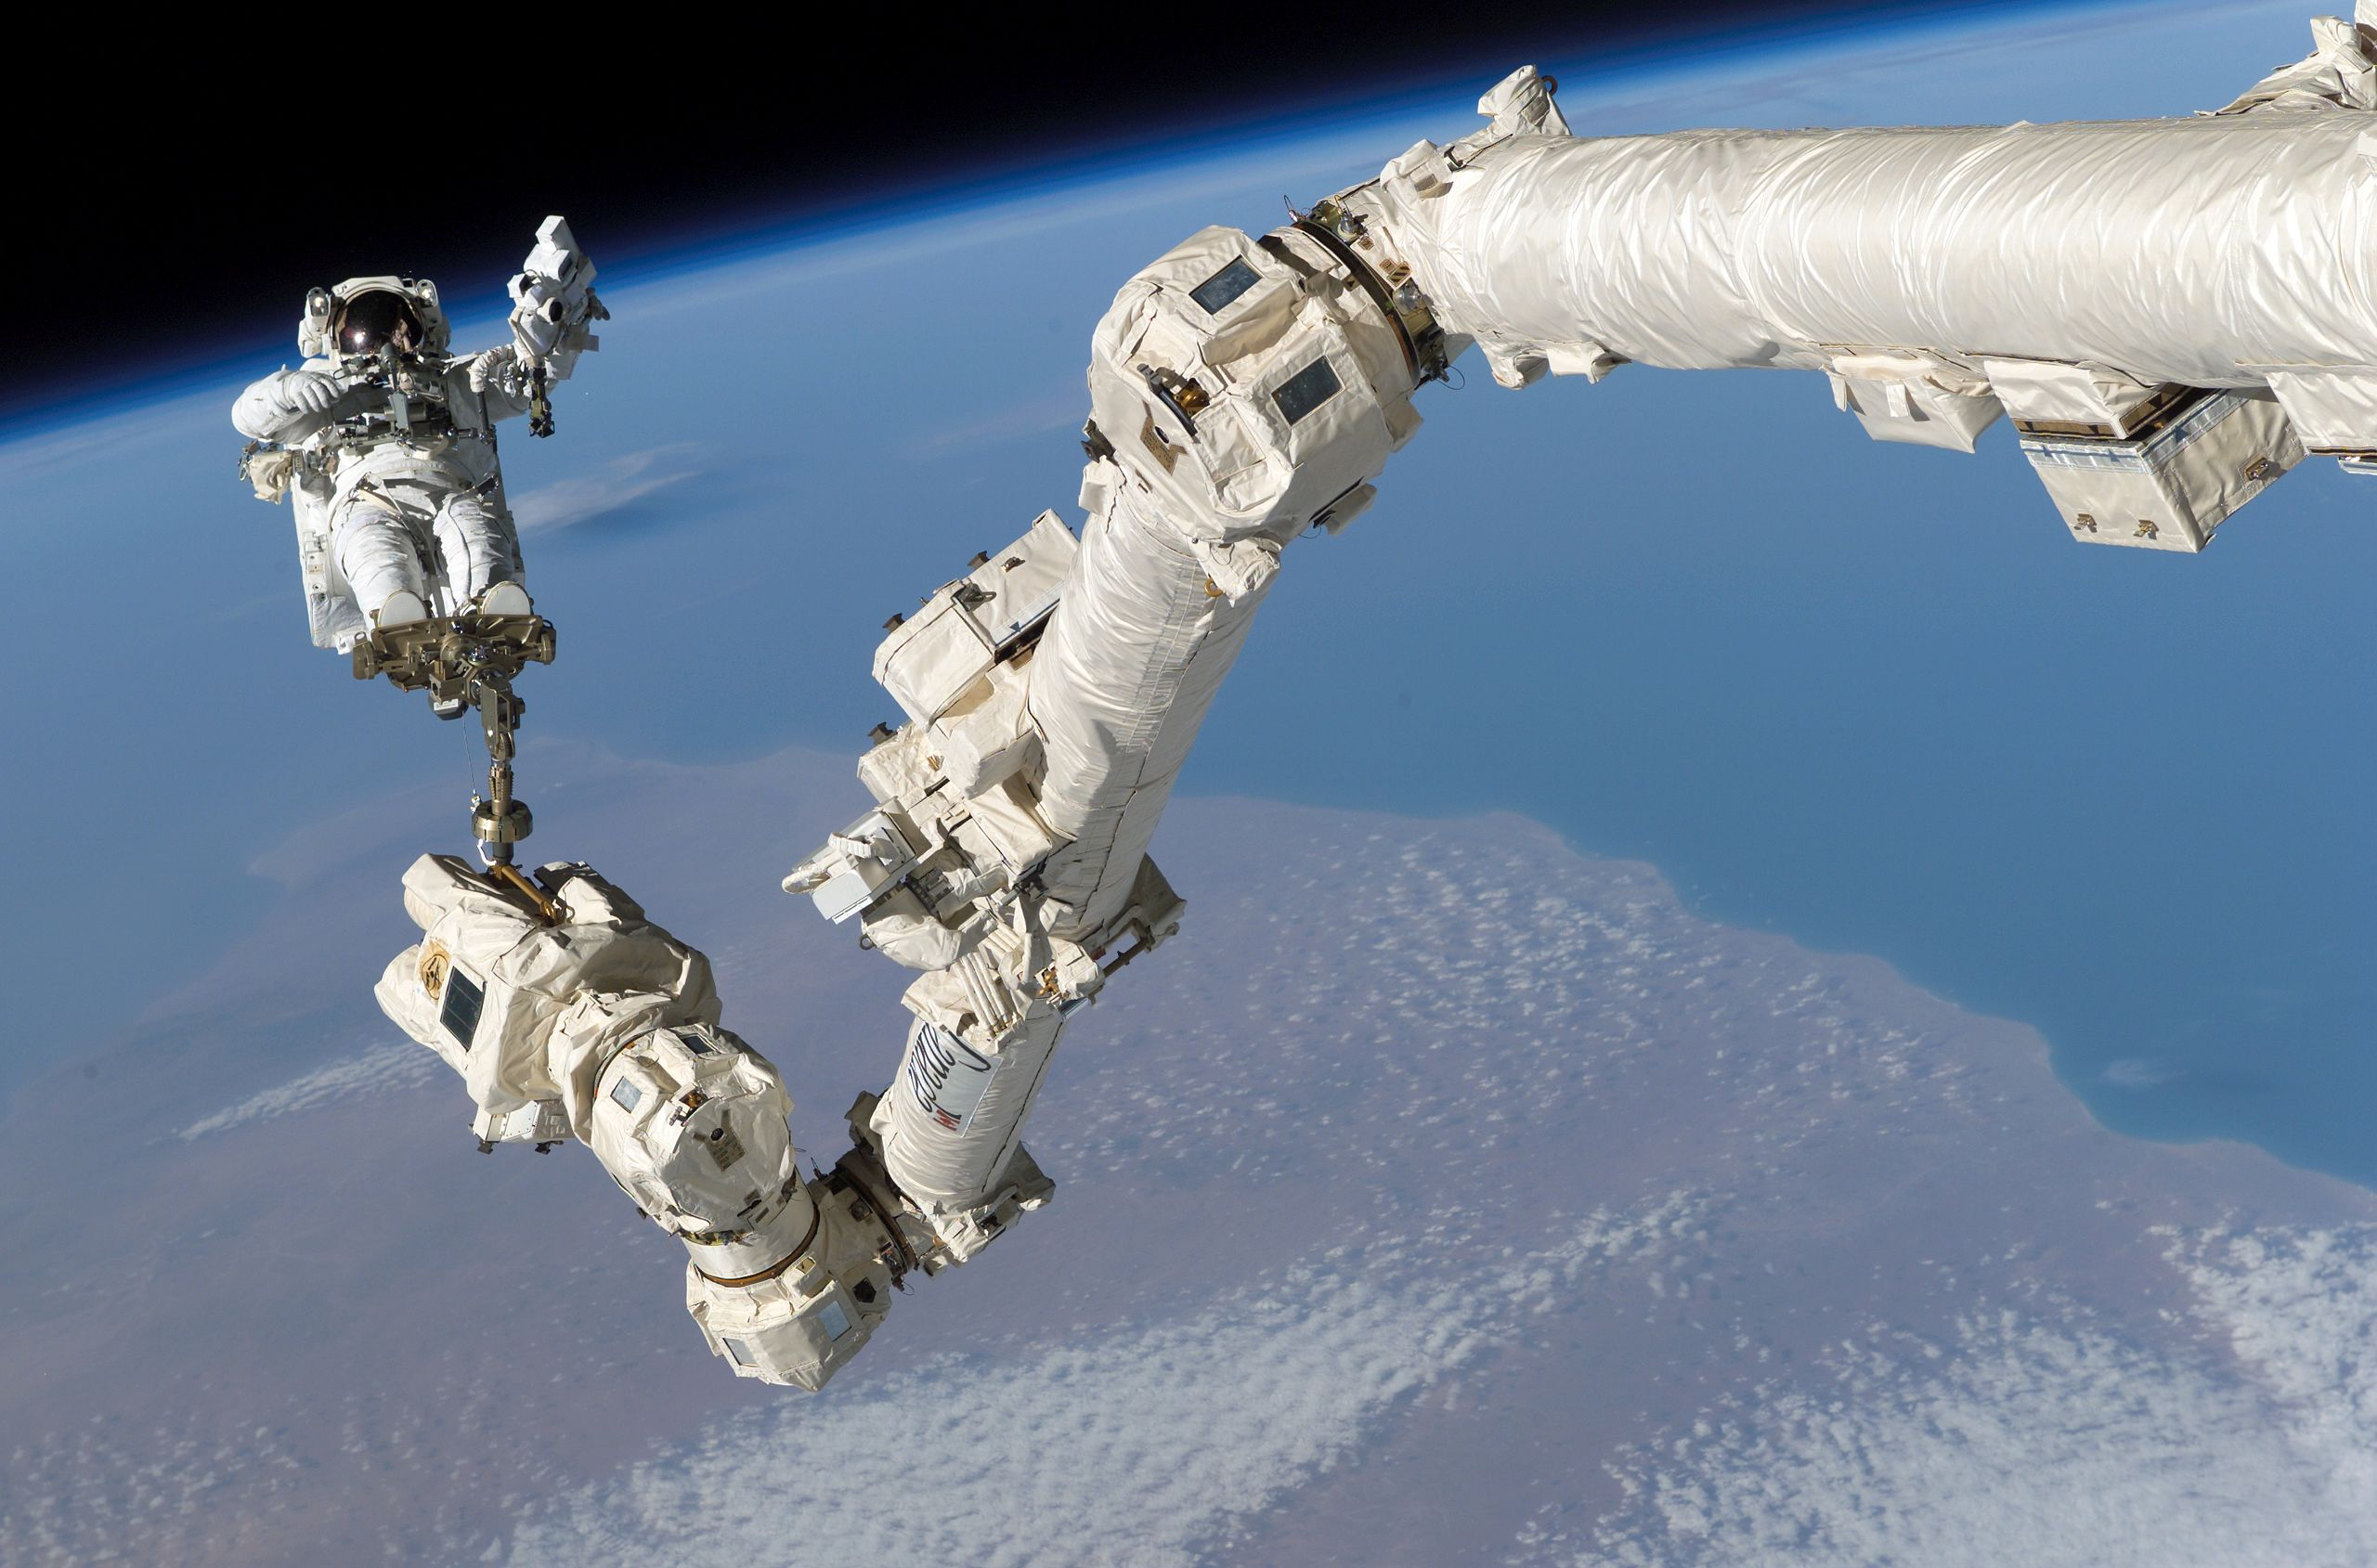 Canadarm2 pictured back in 2005, along with astronaut Steve Robinson.